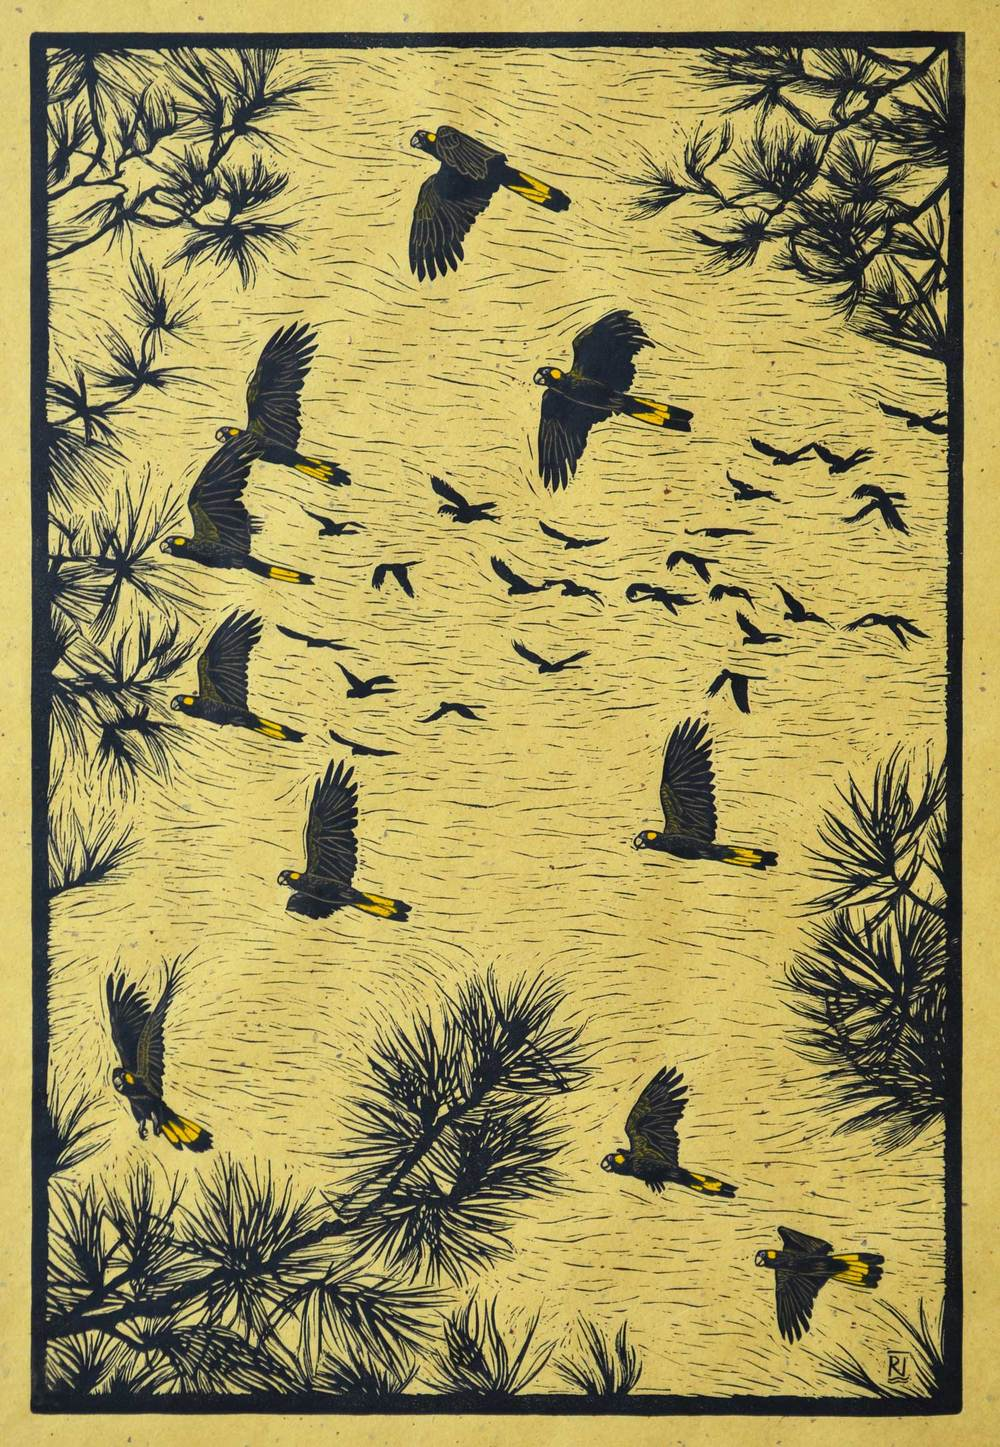 yellow-tailed-black-cockatoos-in-flight-linocut-rachel-newling.jpg